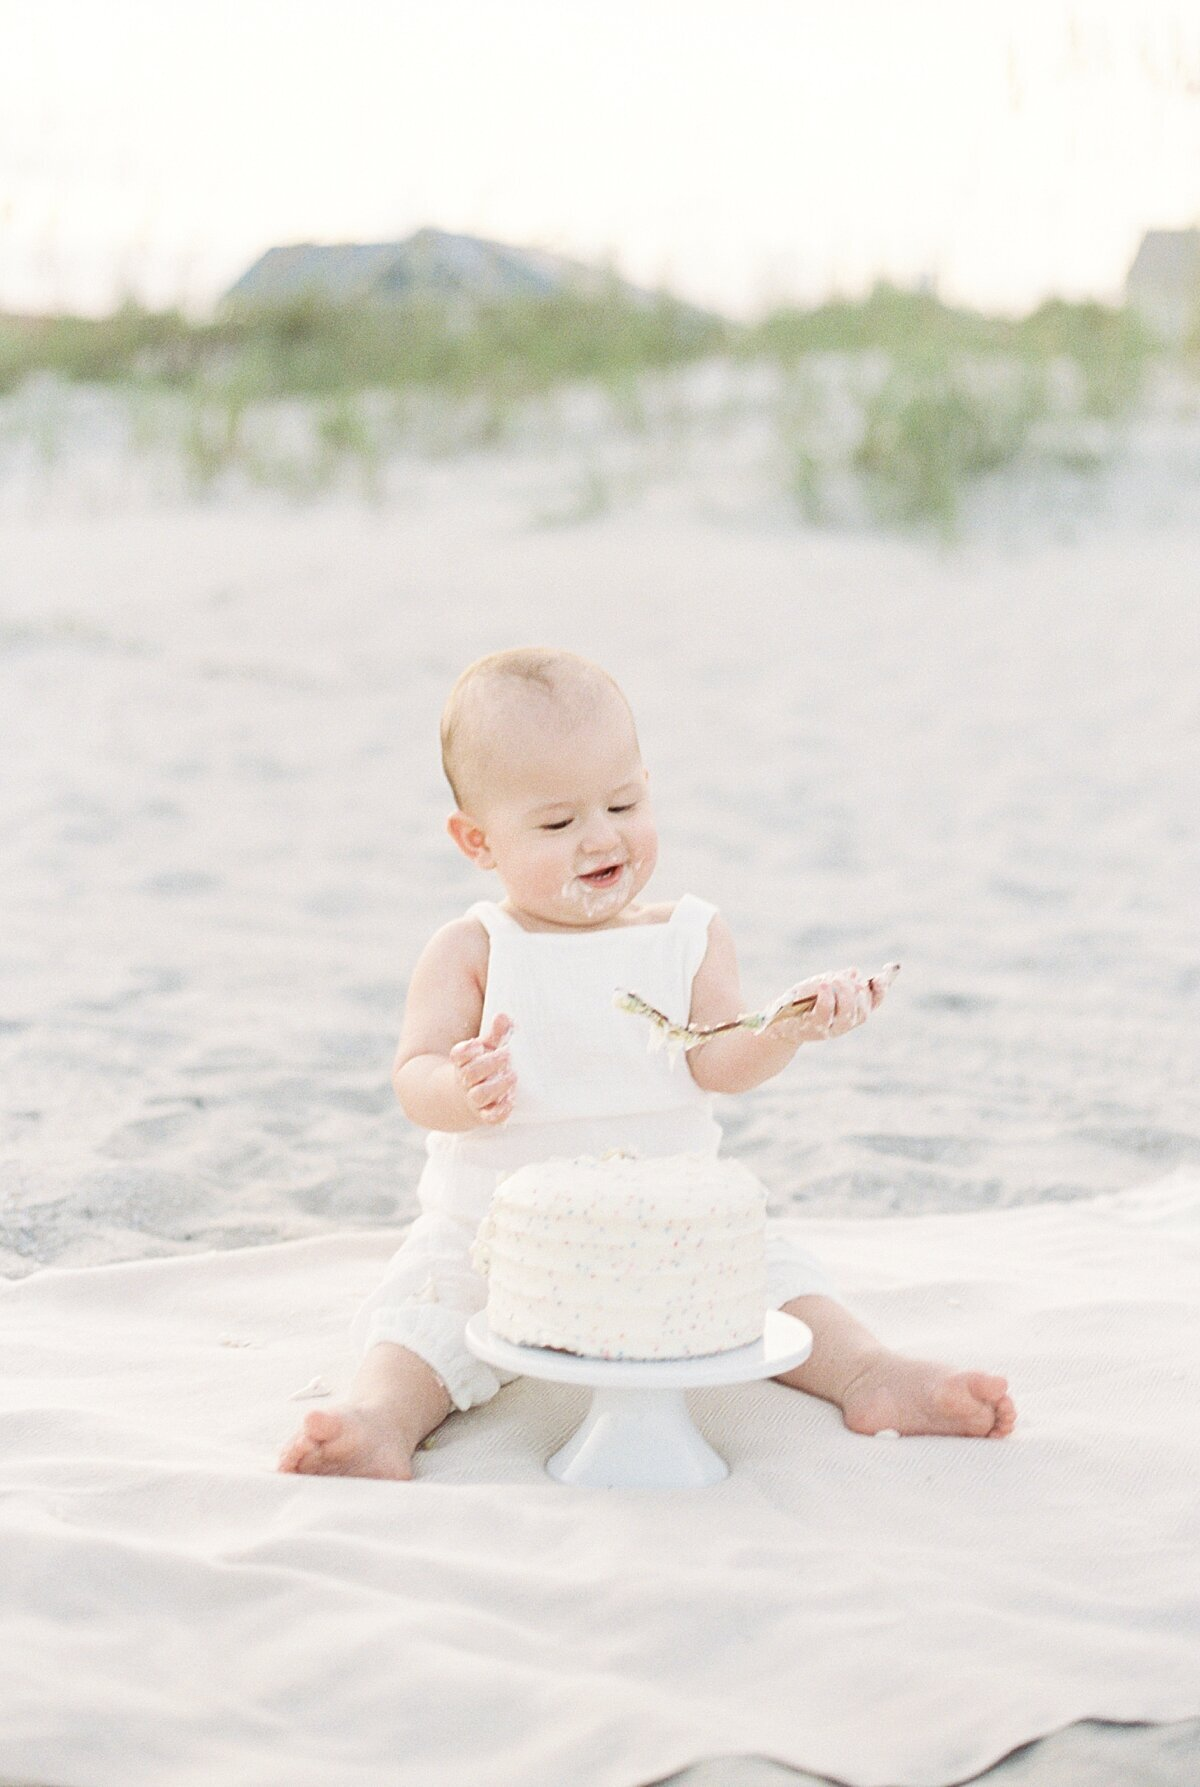 First-birthday-photoshoot-Isle-of-Palms-caitlyn-motycka-photography_0021